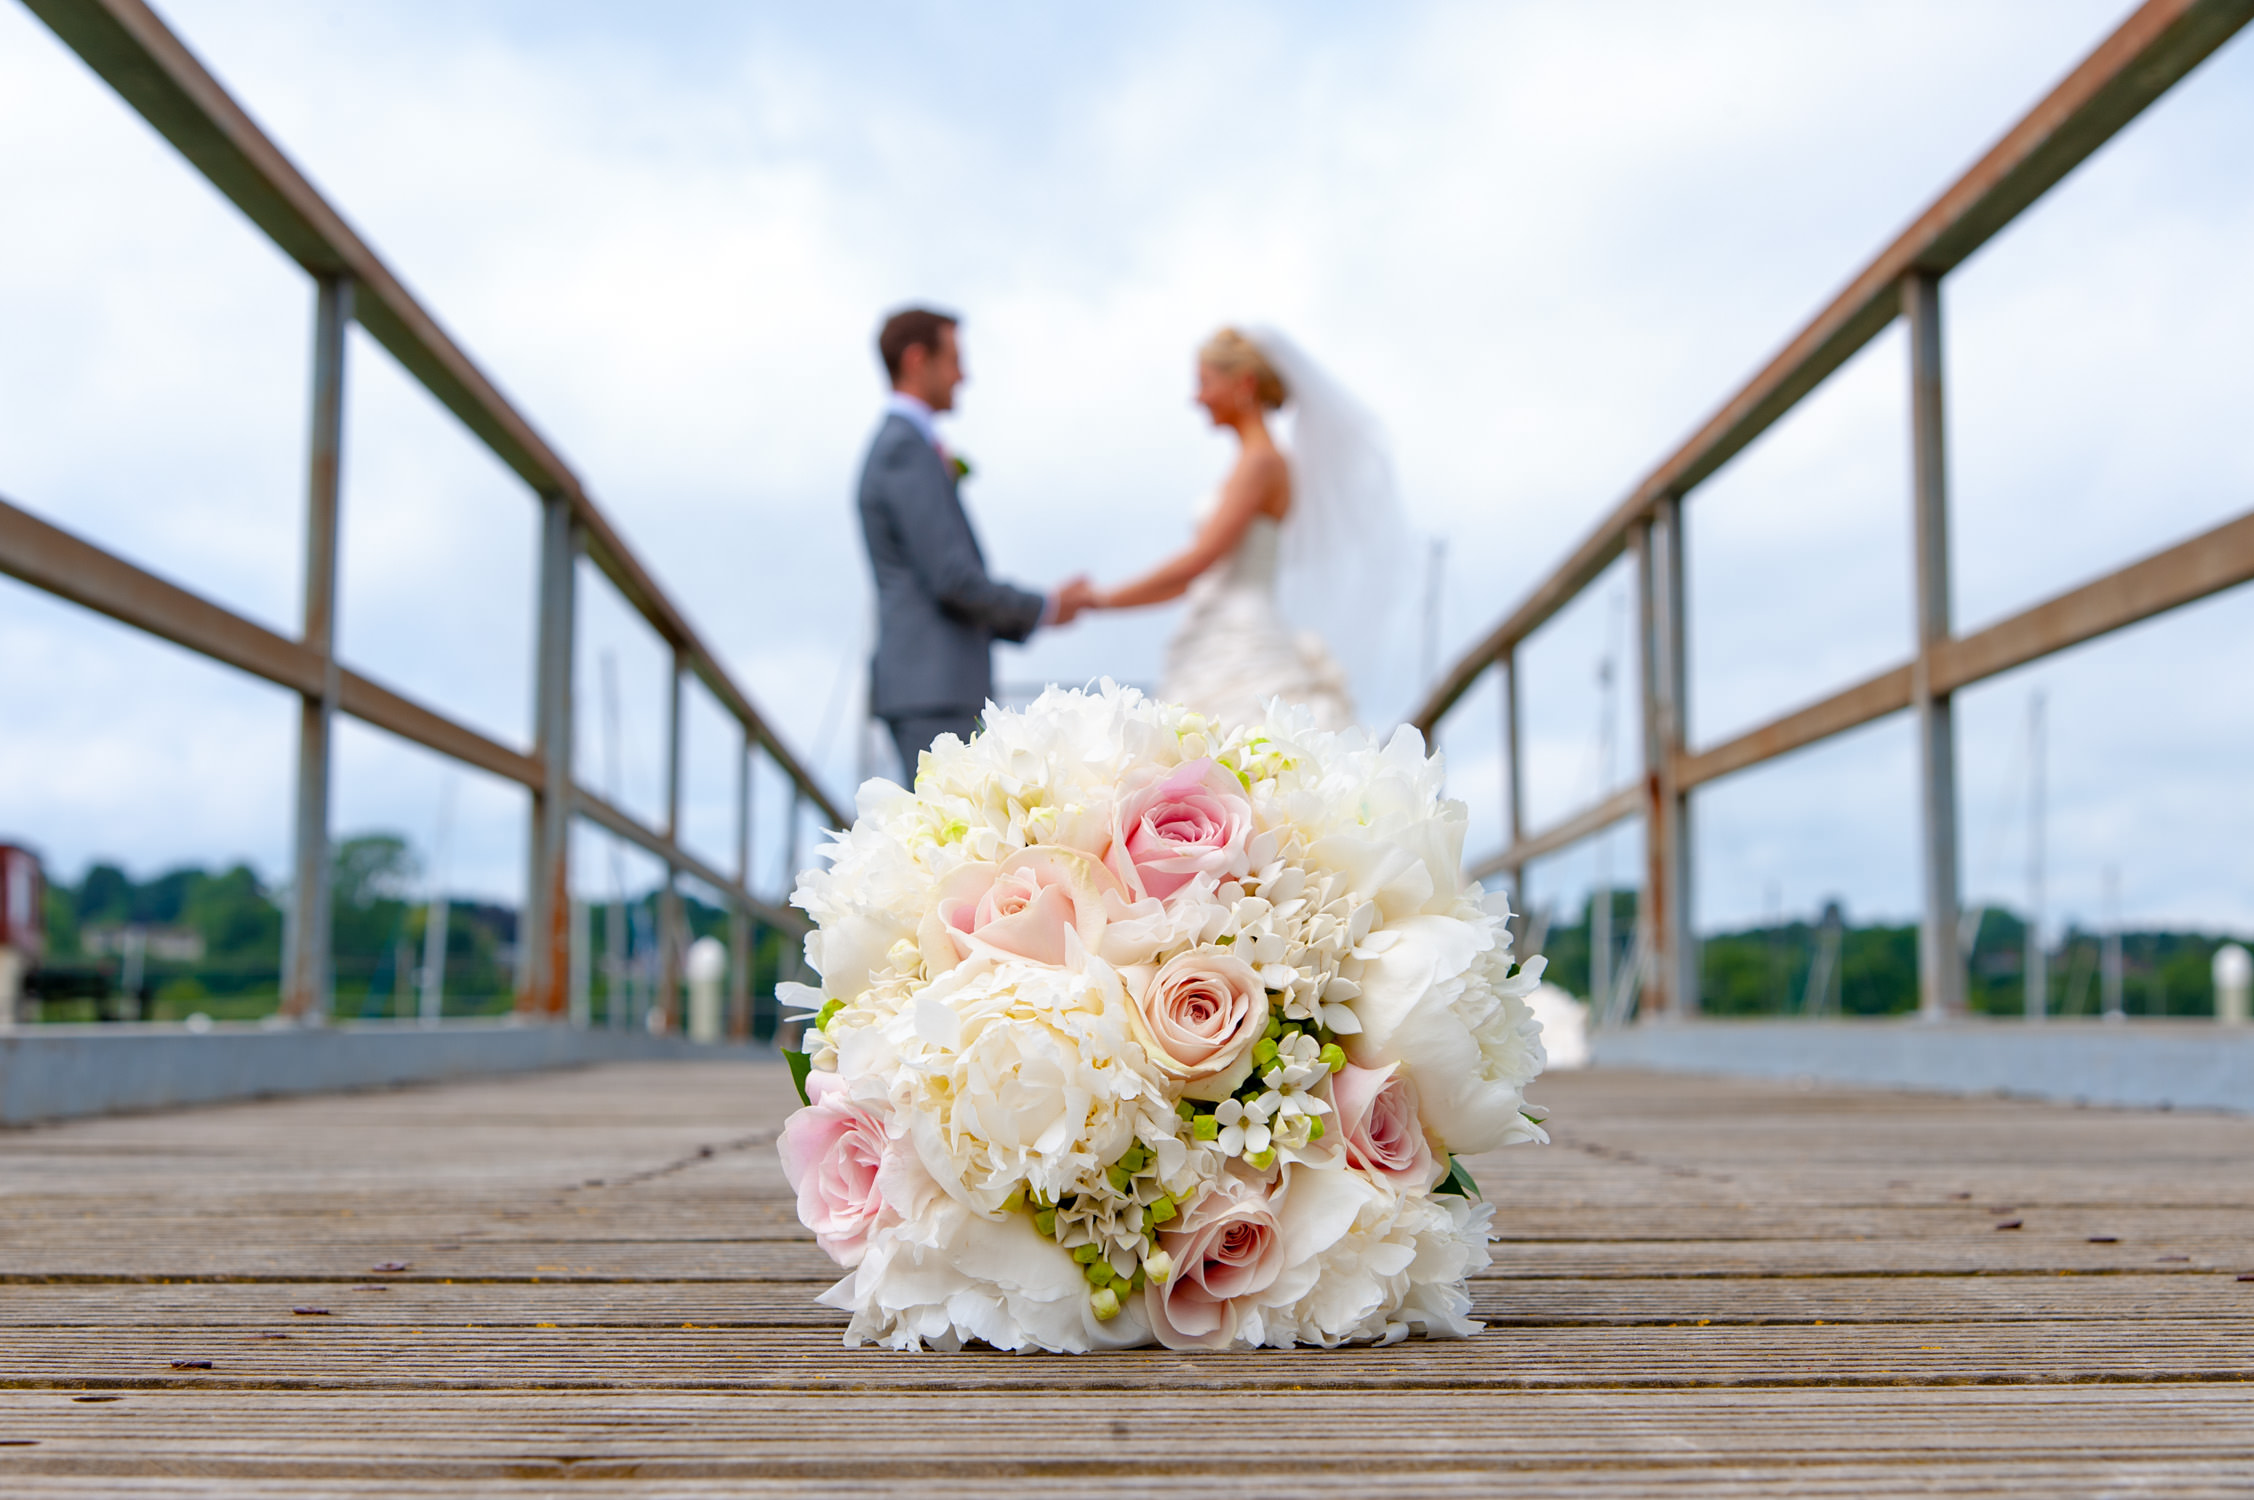 wedding bouquet in front of bride and groom